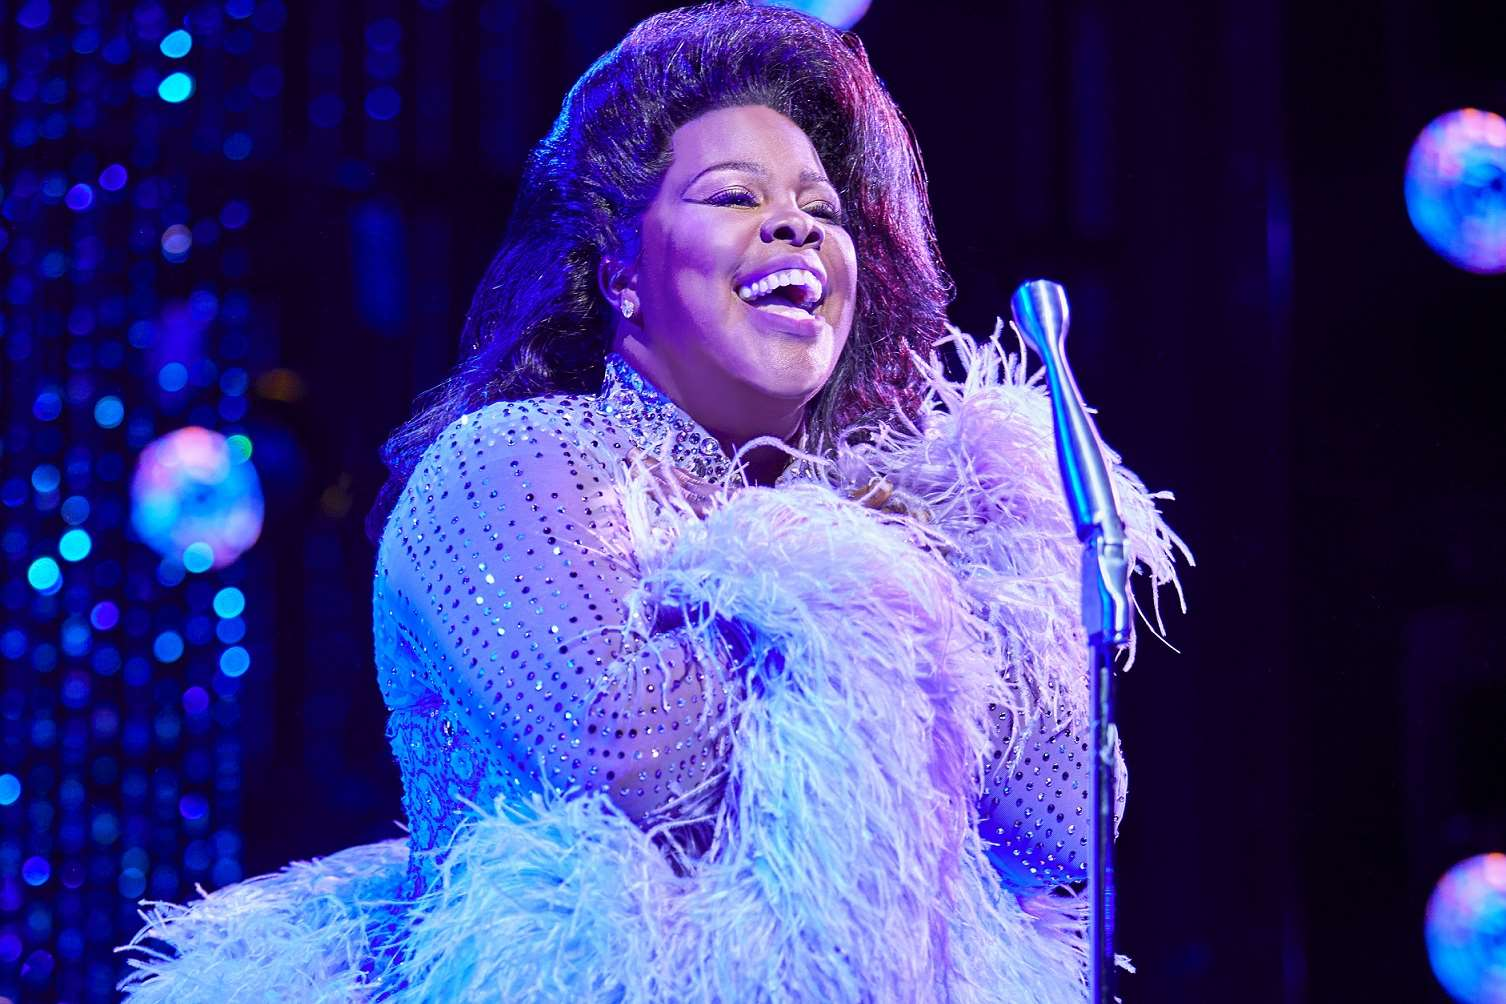 Amber Riley in Dreamgirls at the Savoy Theatre. Credit: Brinkhoff & Mögenburg